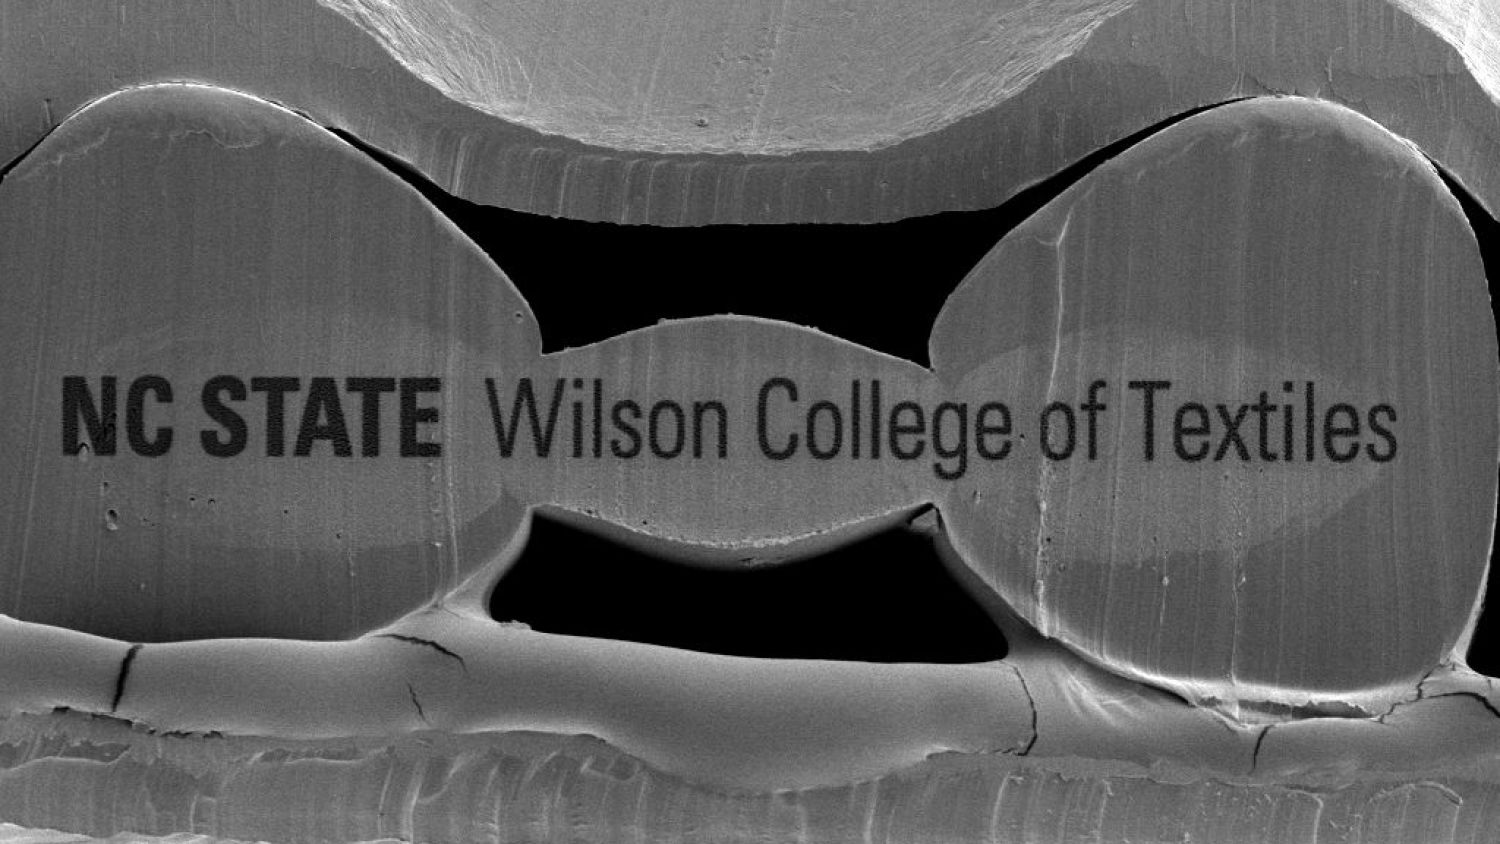 Wilson College of Textiles logo engraved on cross-section of tricomponent fiber